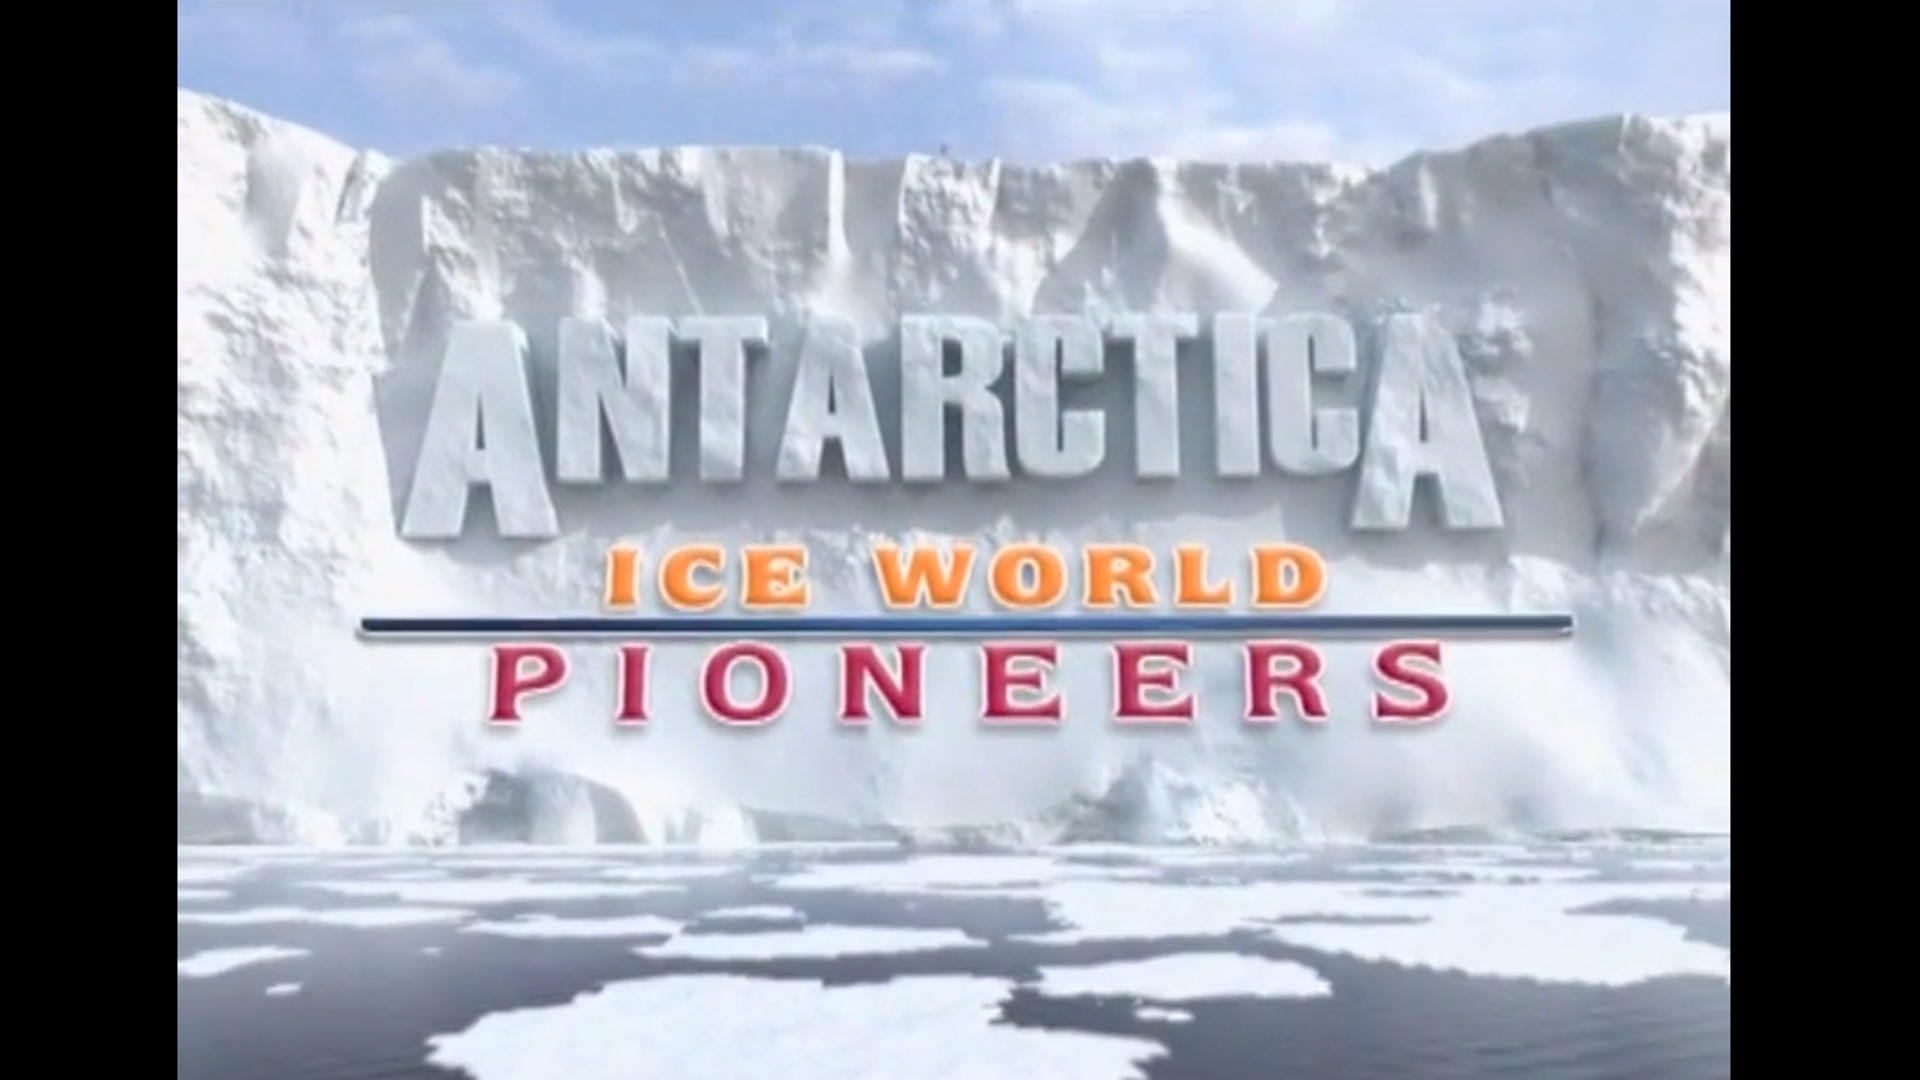 Antarctica: Ice World Pioneers